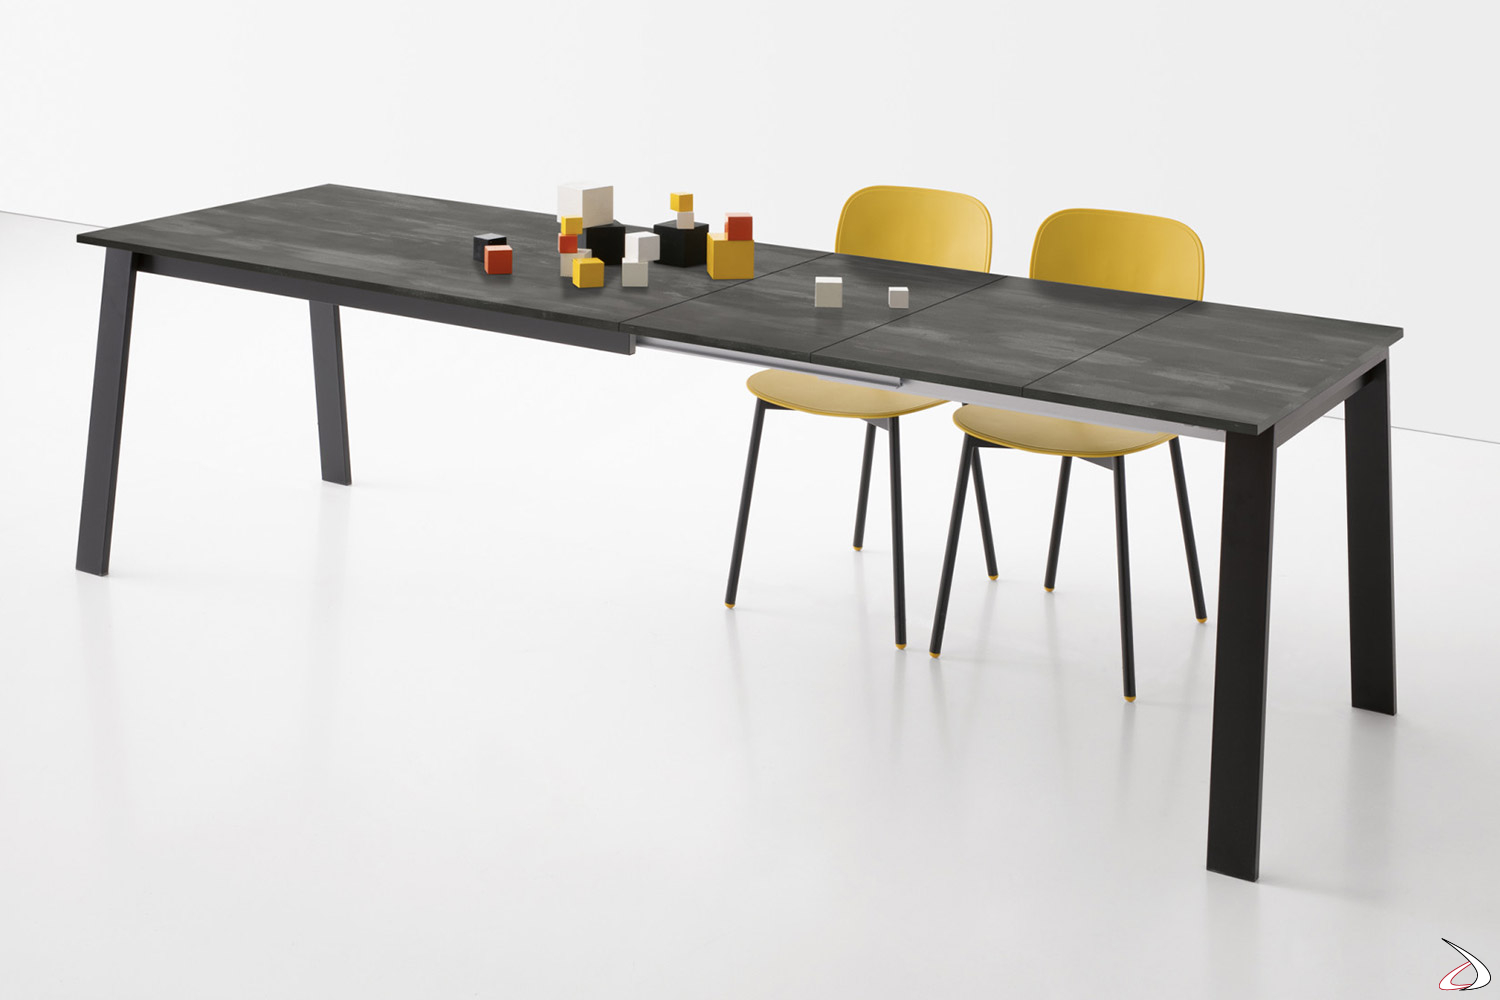 Tavolo Allungabile Con Prolunghe.Delta Kitchen Table With A Modern Design And Metal Legs